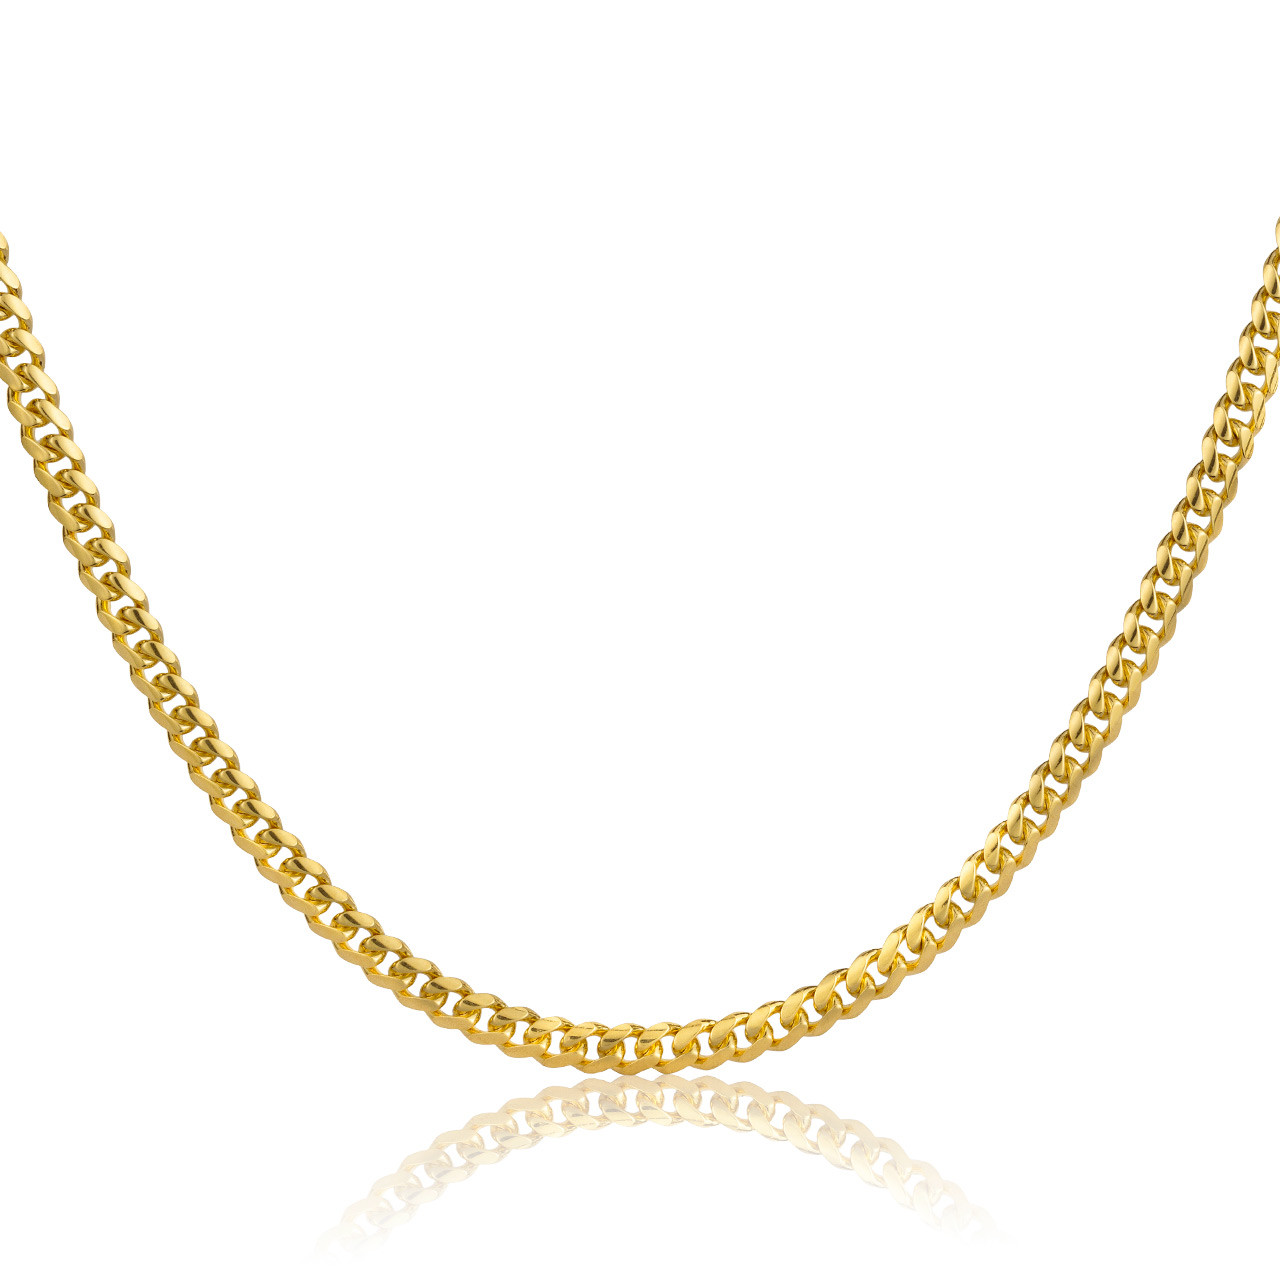 """30/"""" Length MIAMI CUBAN LINK CHAIN 18/"""" Width 10K SOLID YELLOW GOLD 2.5mm"""